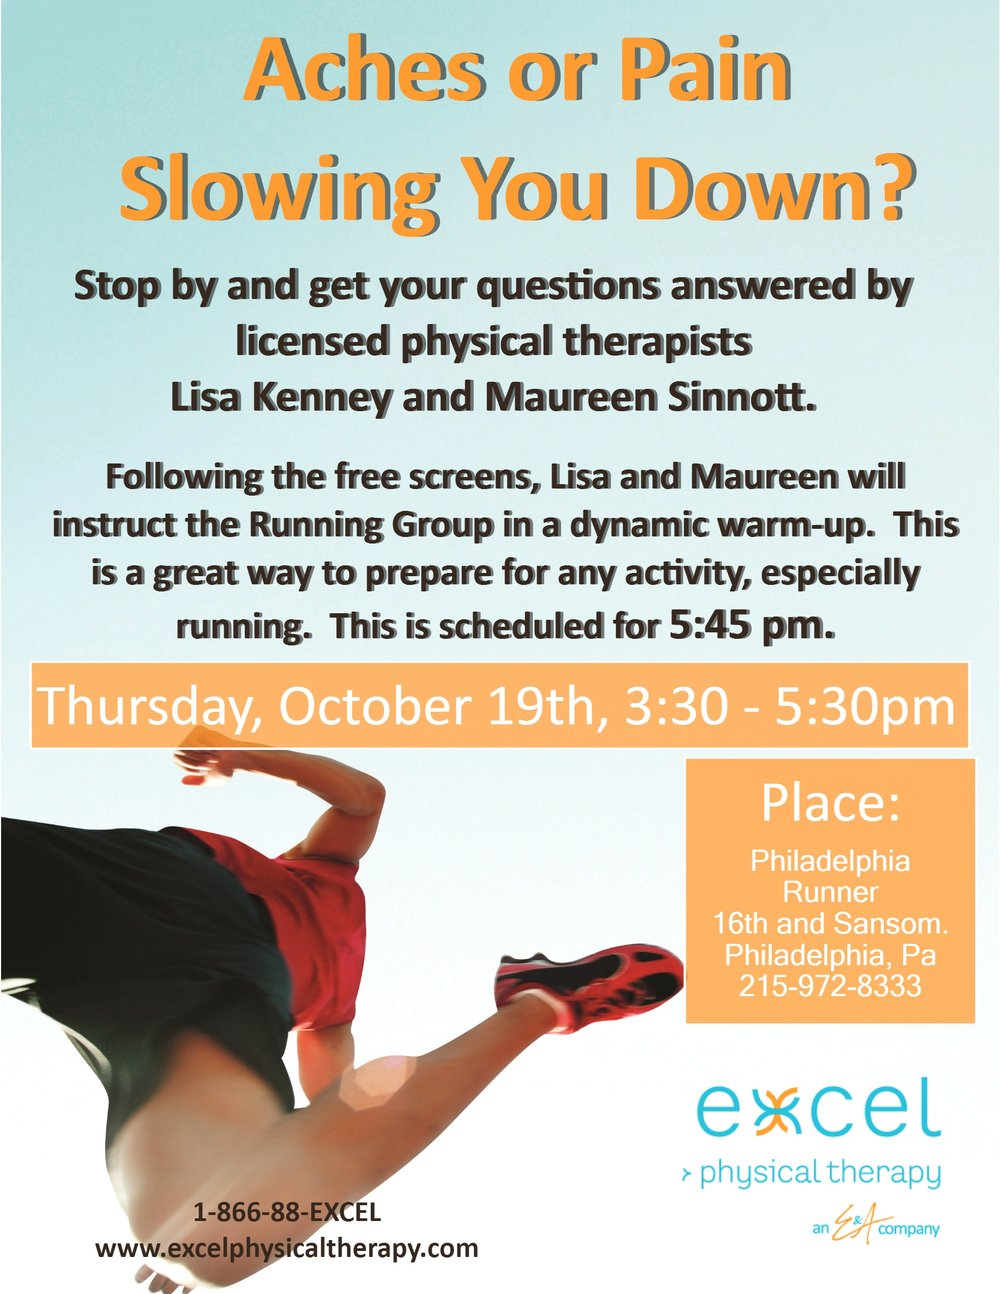 Excel physical therapy -  10 19 Free Screenings Run Warm Up With Excel Physical Therapy